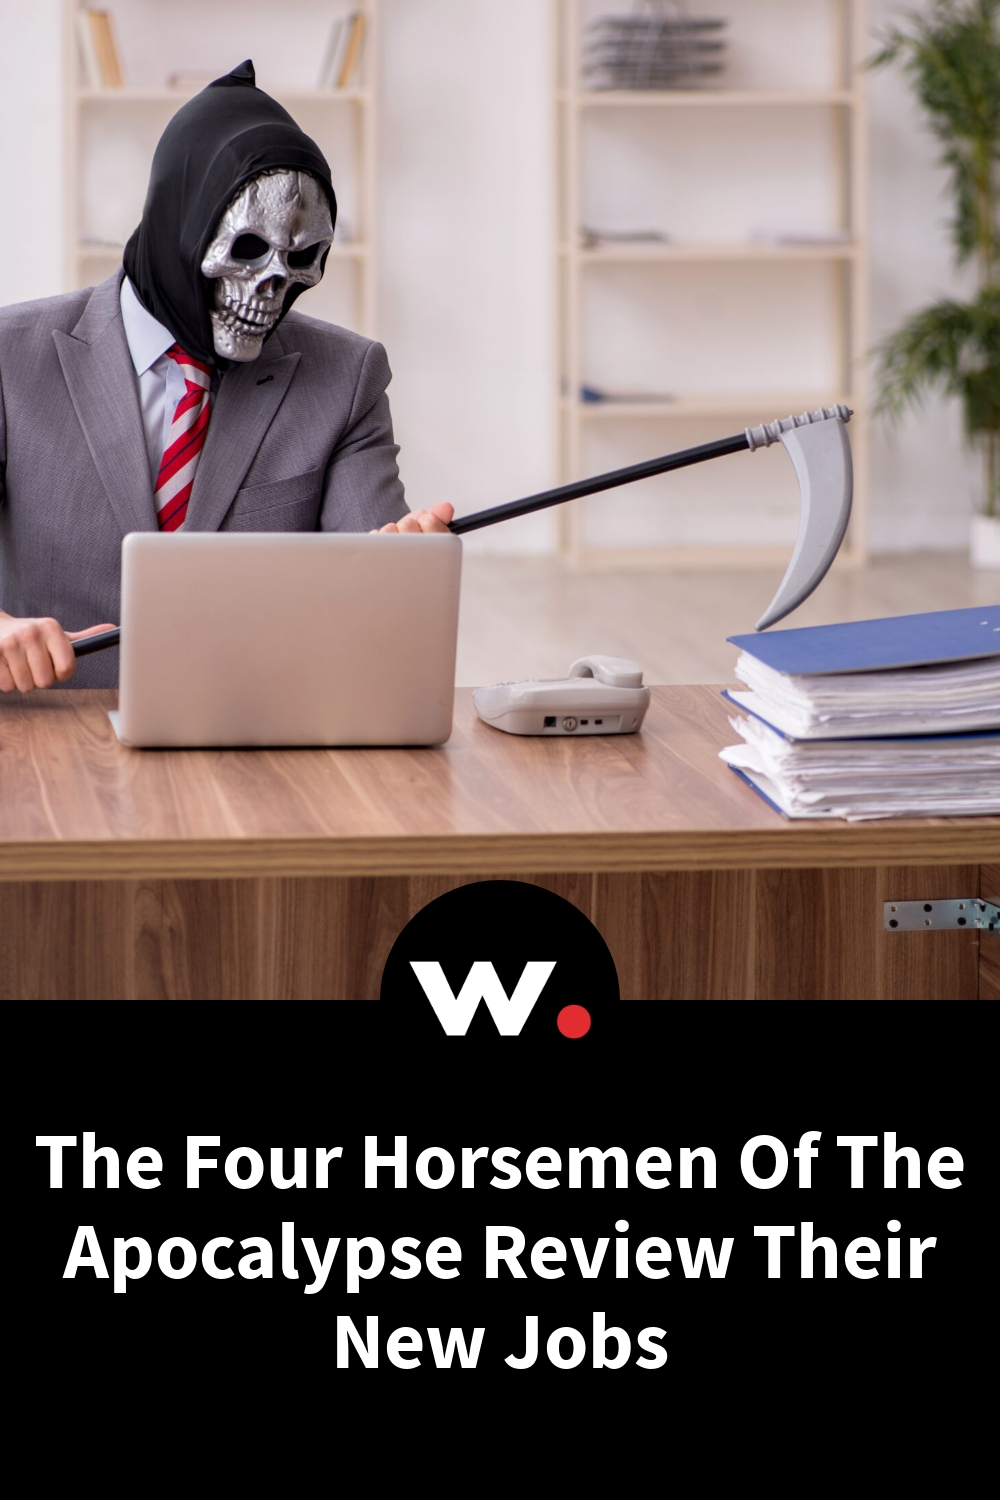 The Four Horsemen Of The Apocalypse Review Their New Jobs